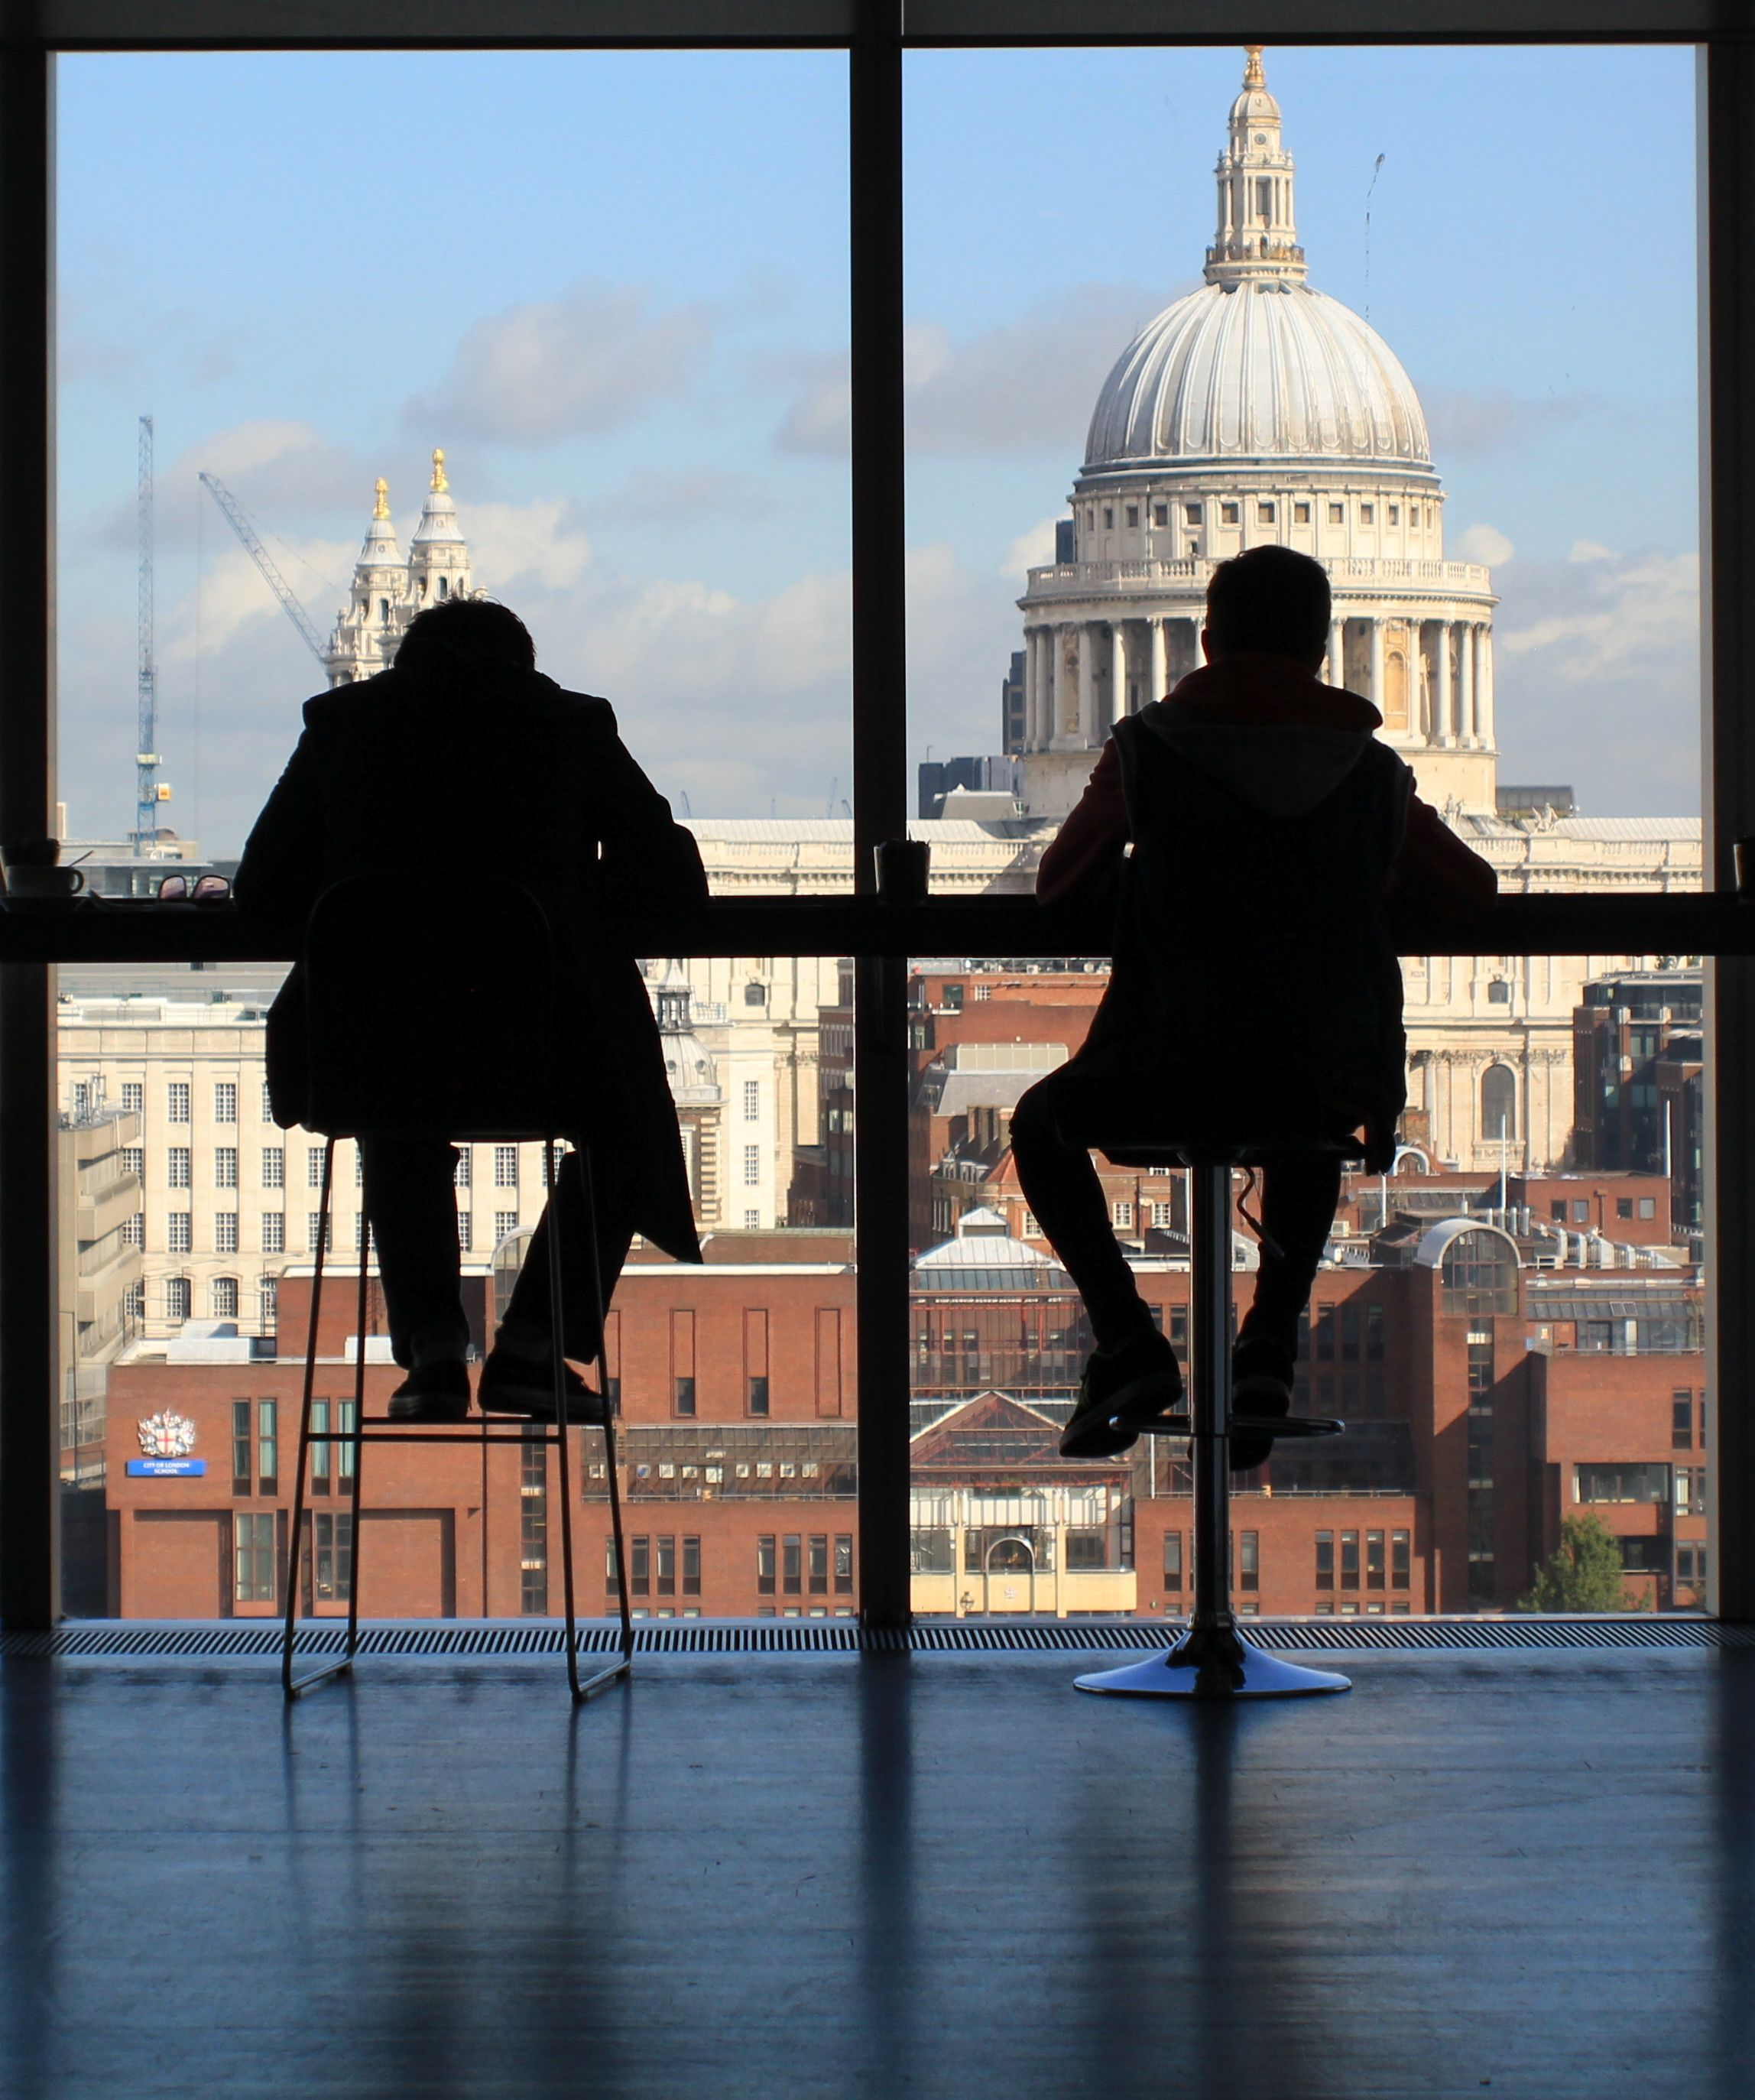 View from the Tate Modern in London